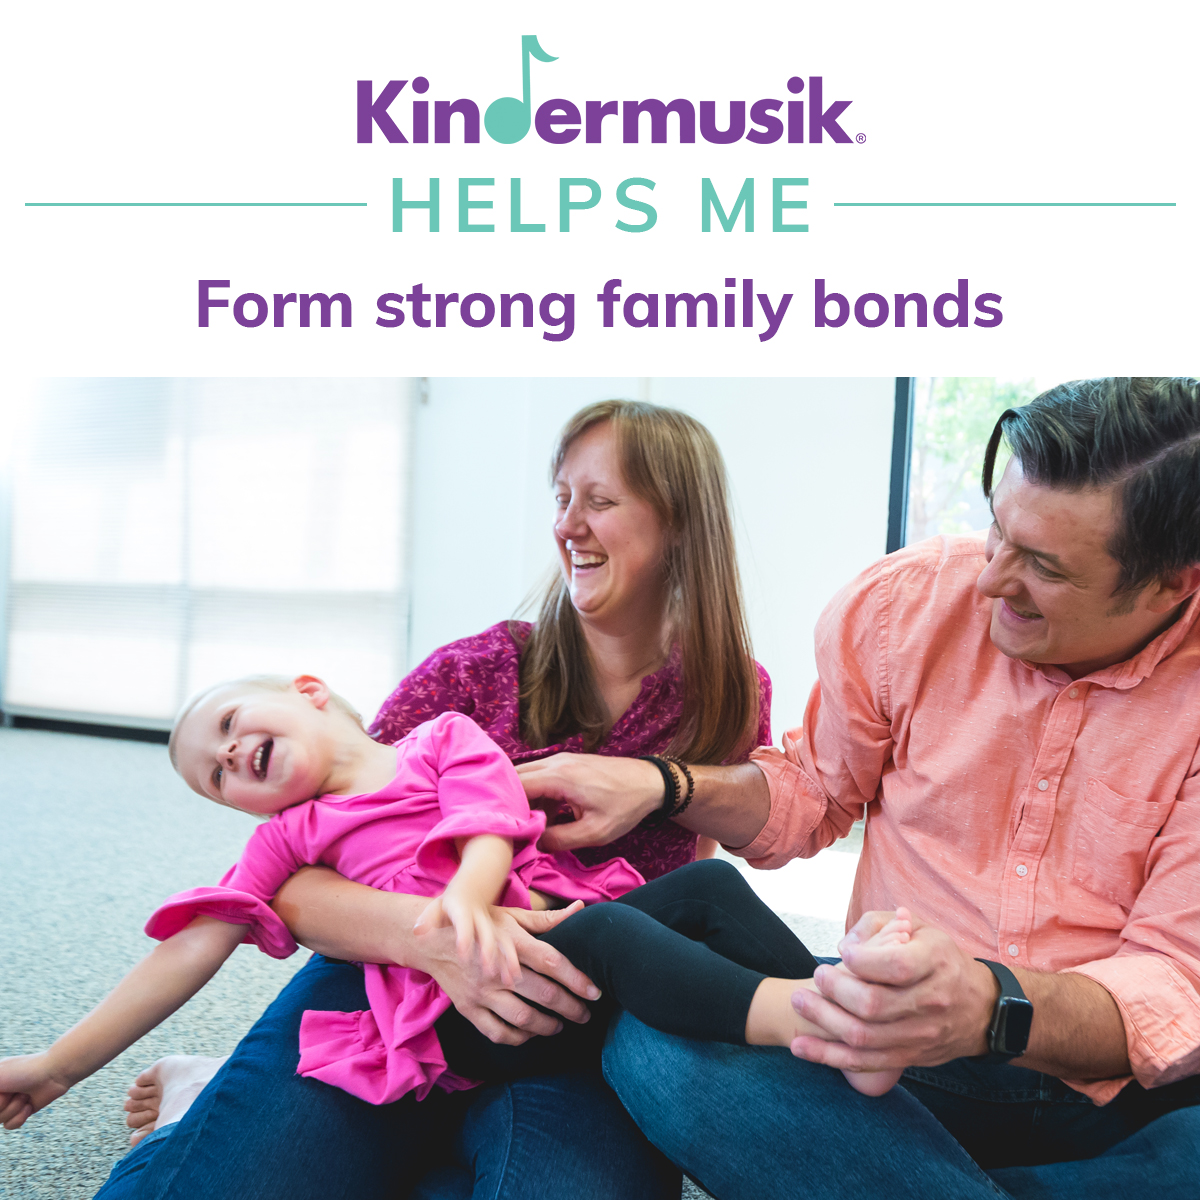 """Bonding is SO important for #earlydevelopment. Trust, imitation, safety, and emotional growth are all part of what goes into the """"bonding"""" element of Kindermusik. #kindermusik #kindermusikhelpswiththat #playtogether #musicmatters #braindevelopment #mommyandme #daddyandme #yycmomspic.twitter.com/2vwG1rm3pF"""